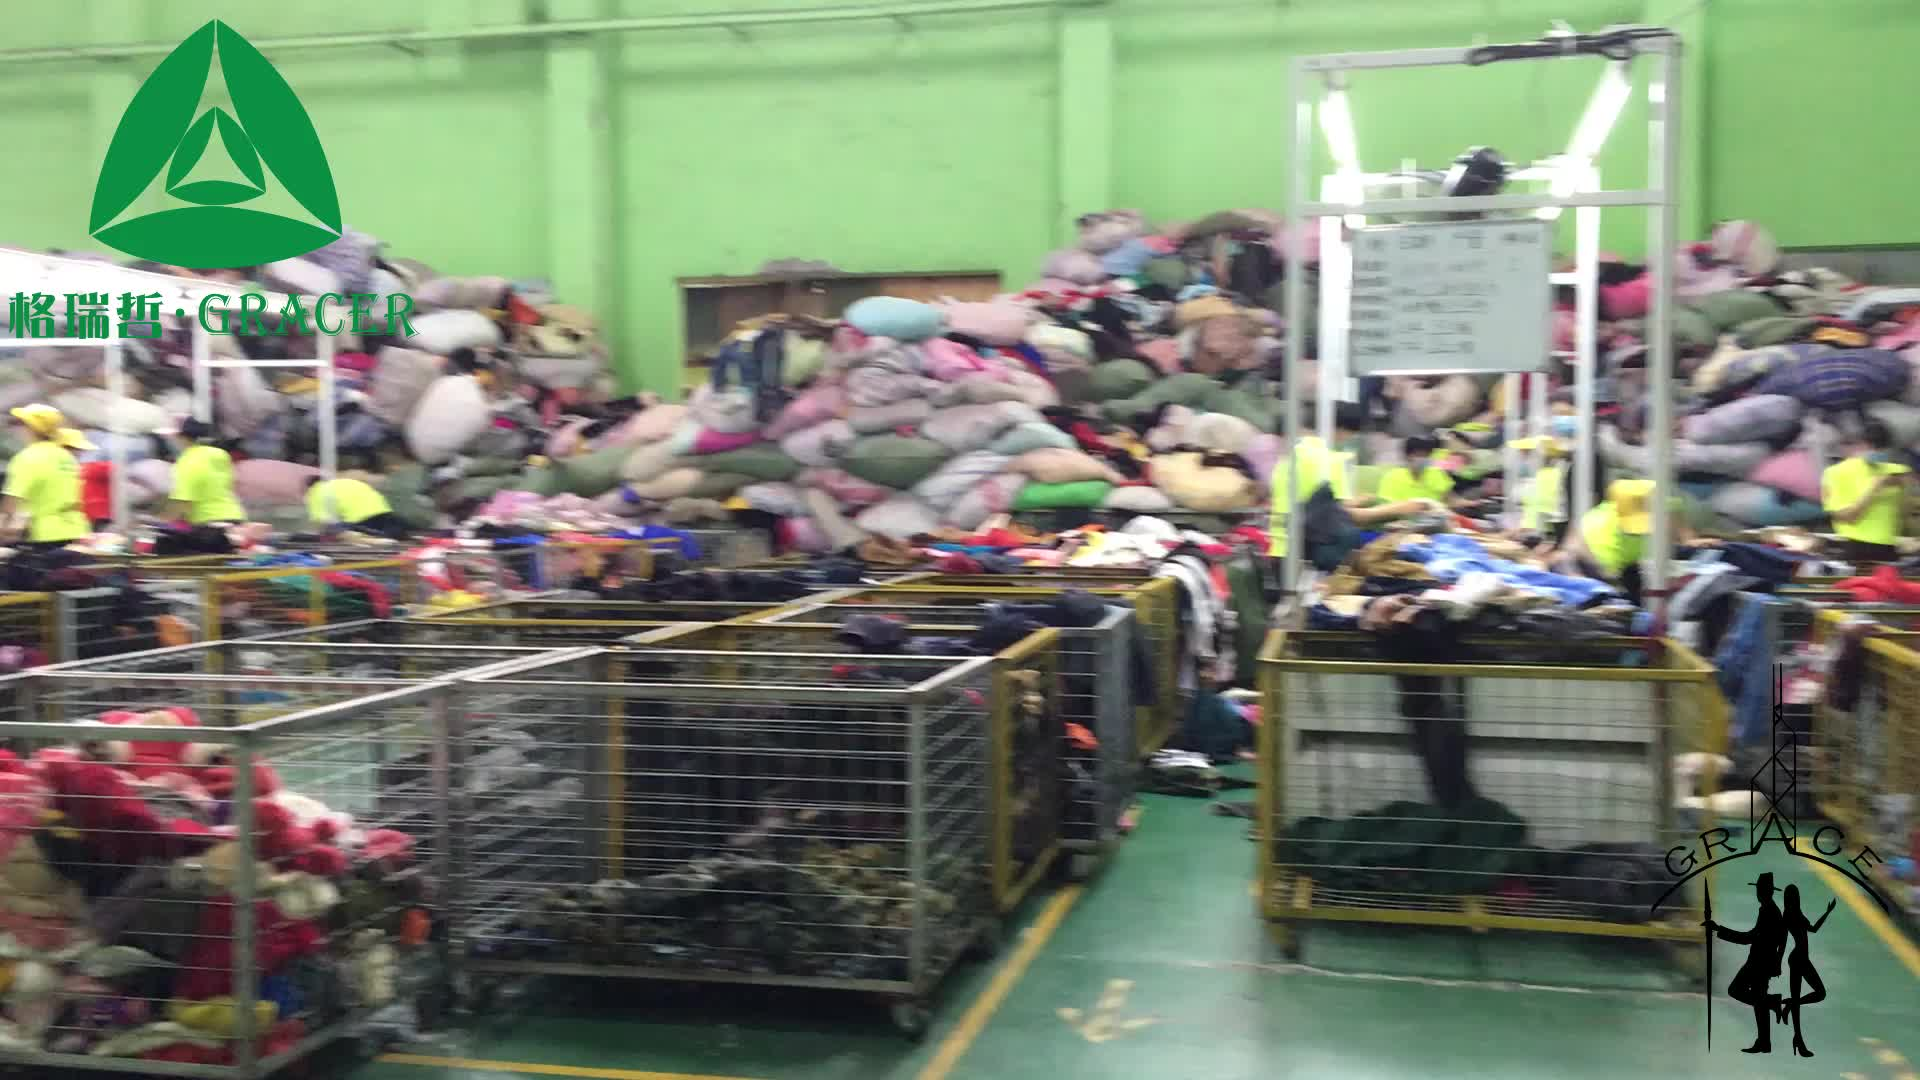 40% Discount used clothes bales 45kg second hand clothes in Africa